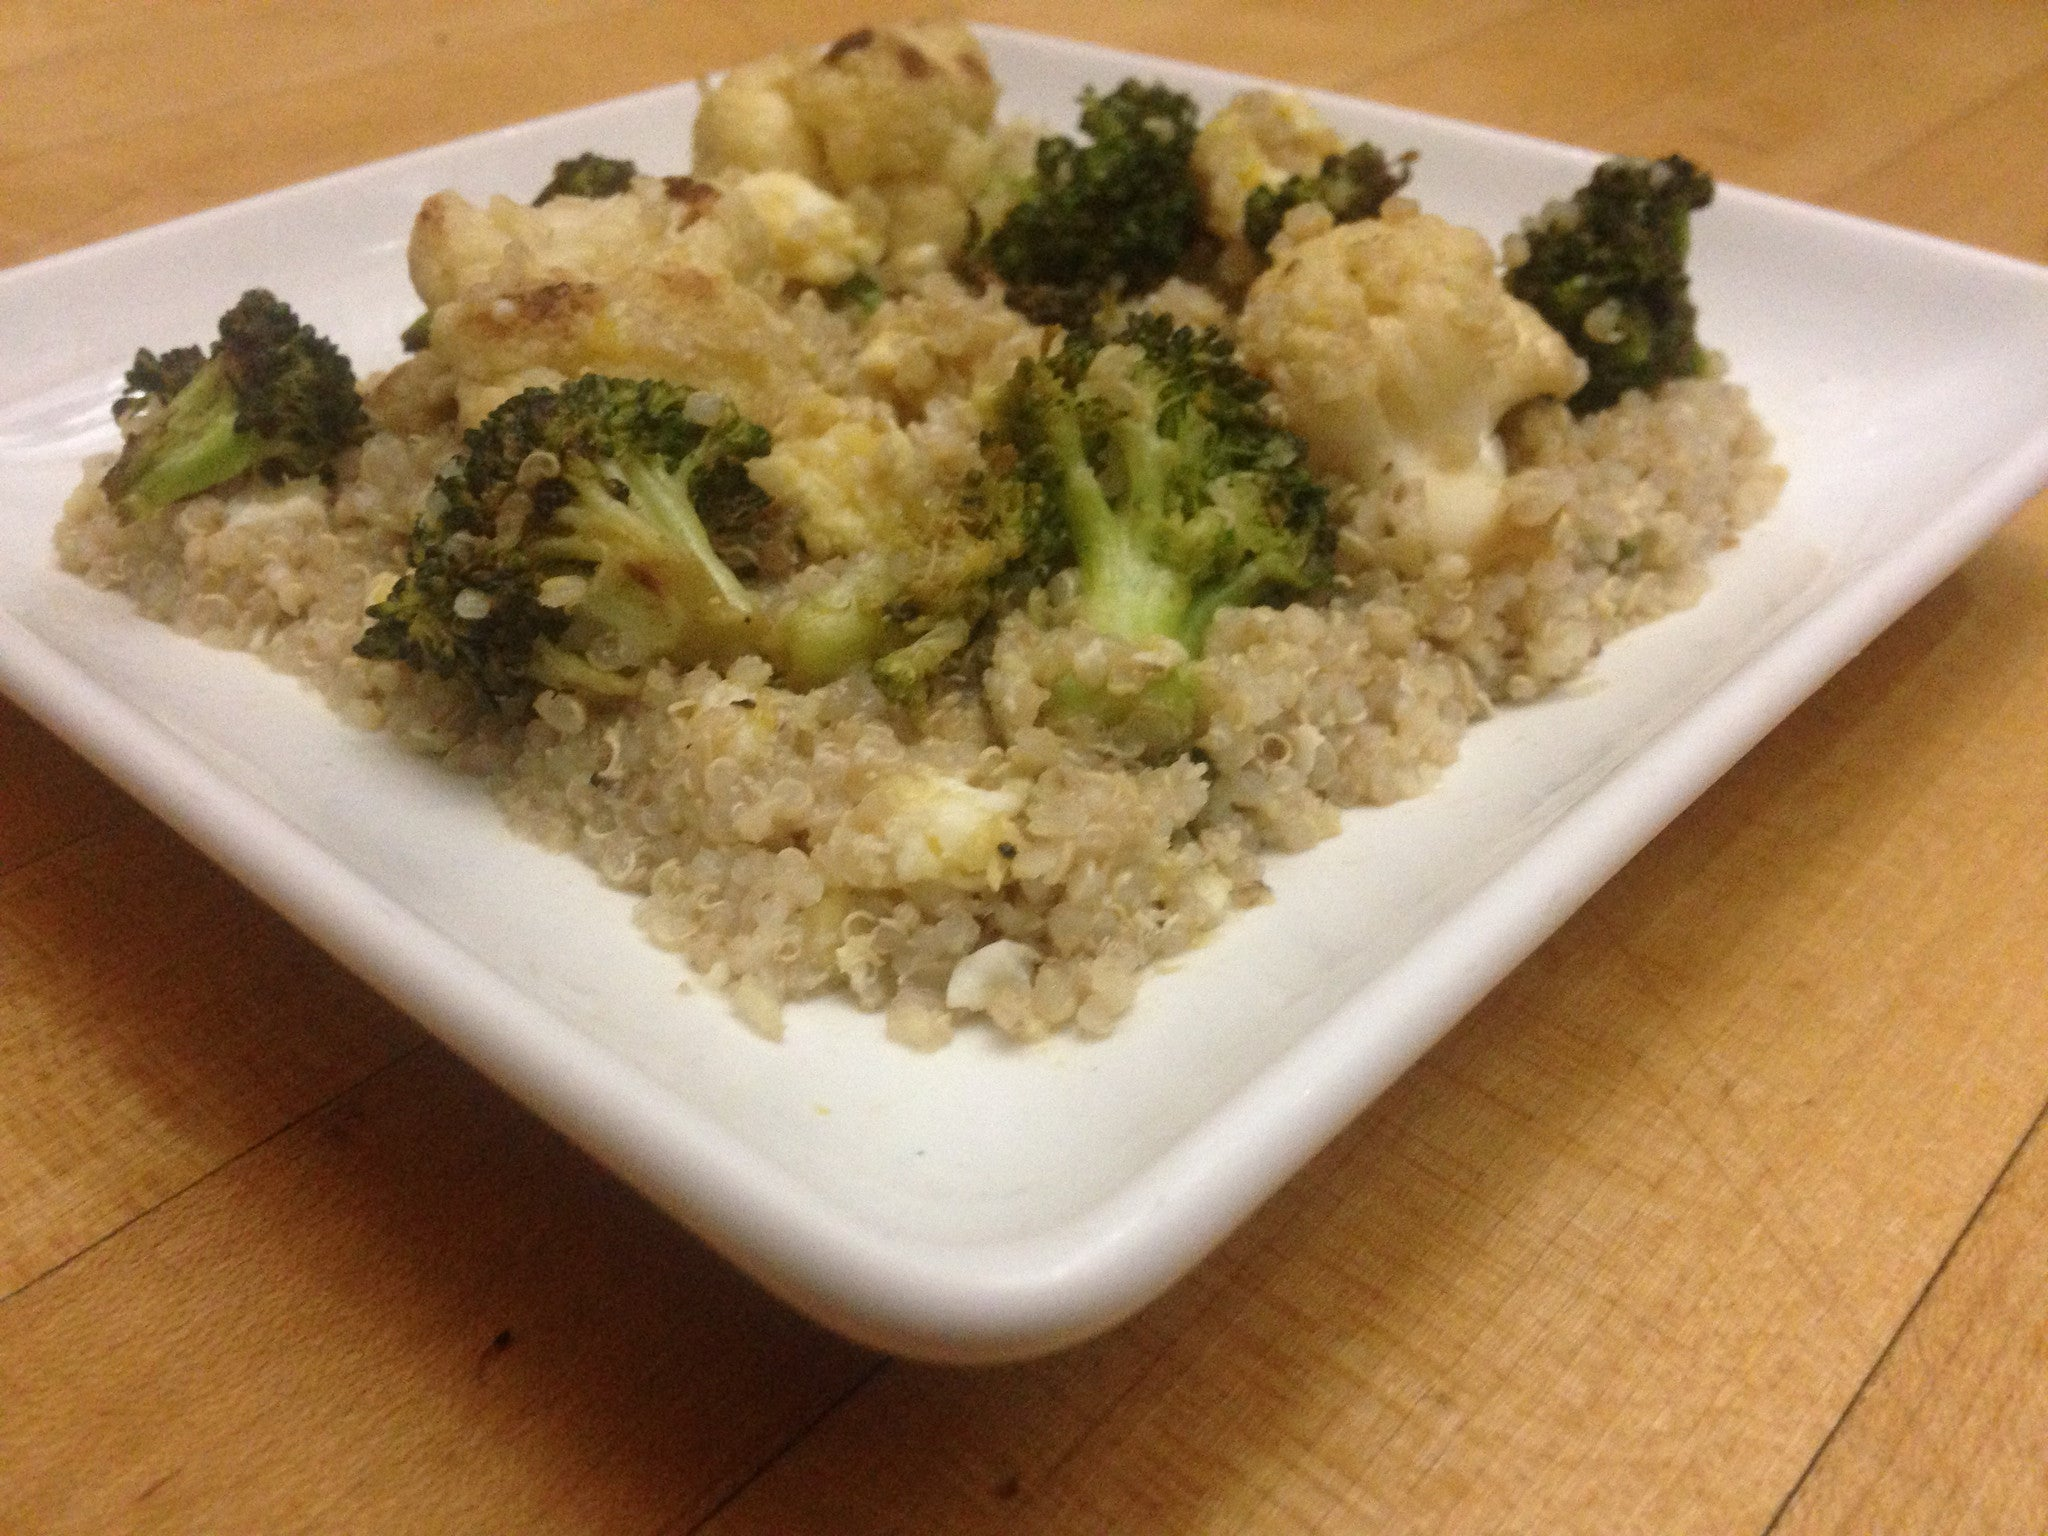 egg-fried-quinoa-with-broccoli-&-cauliflower-skillit-simple-easy-recipes-dinner-skillet